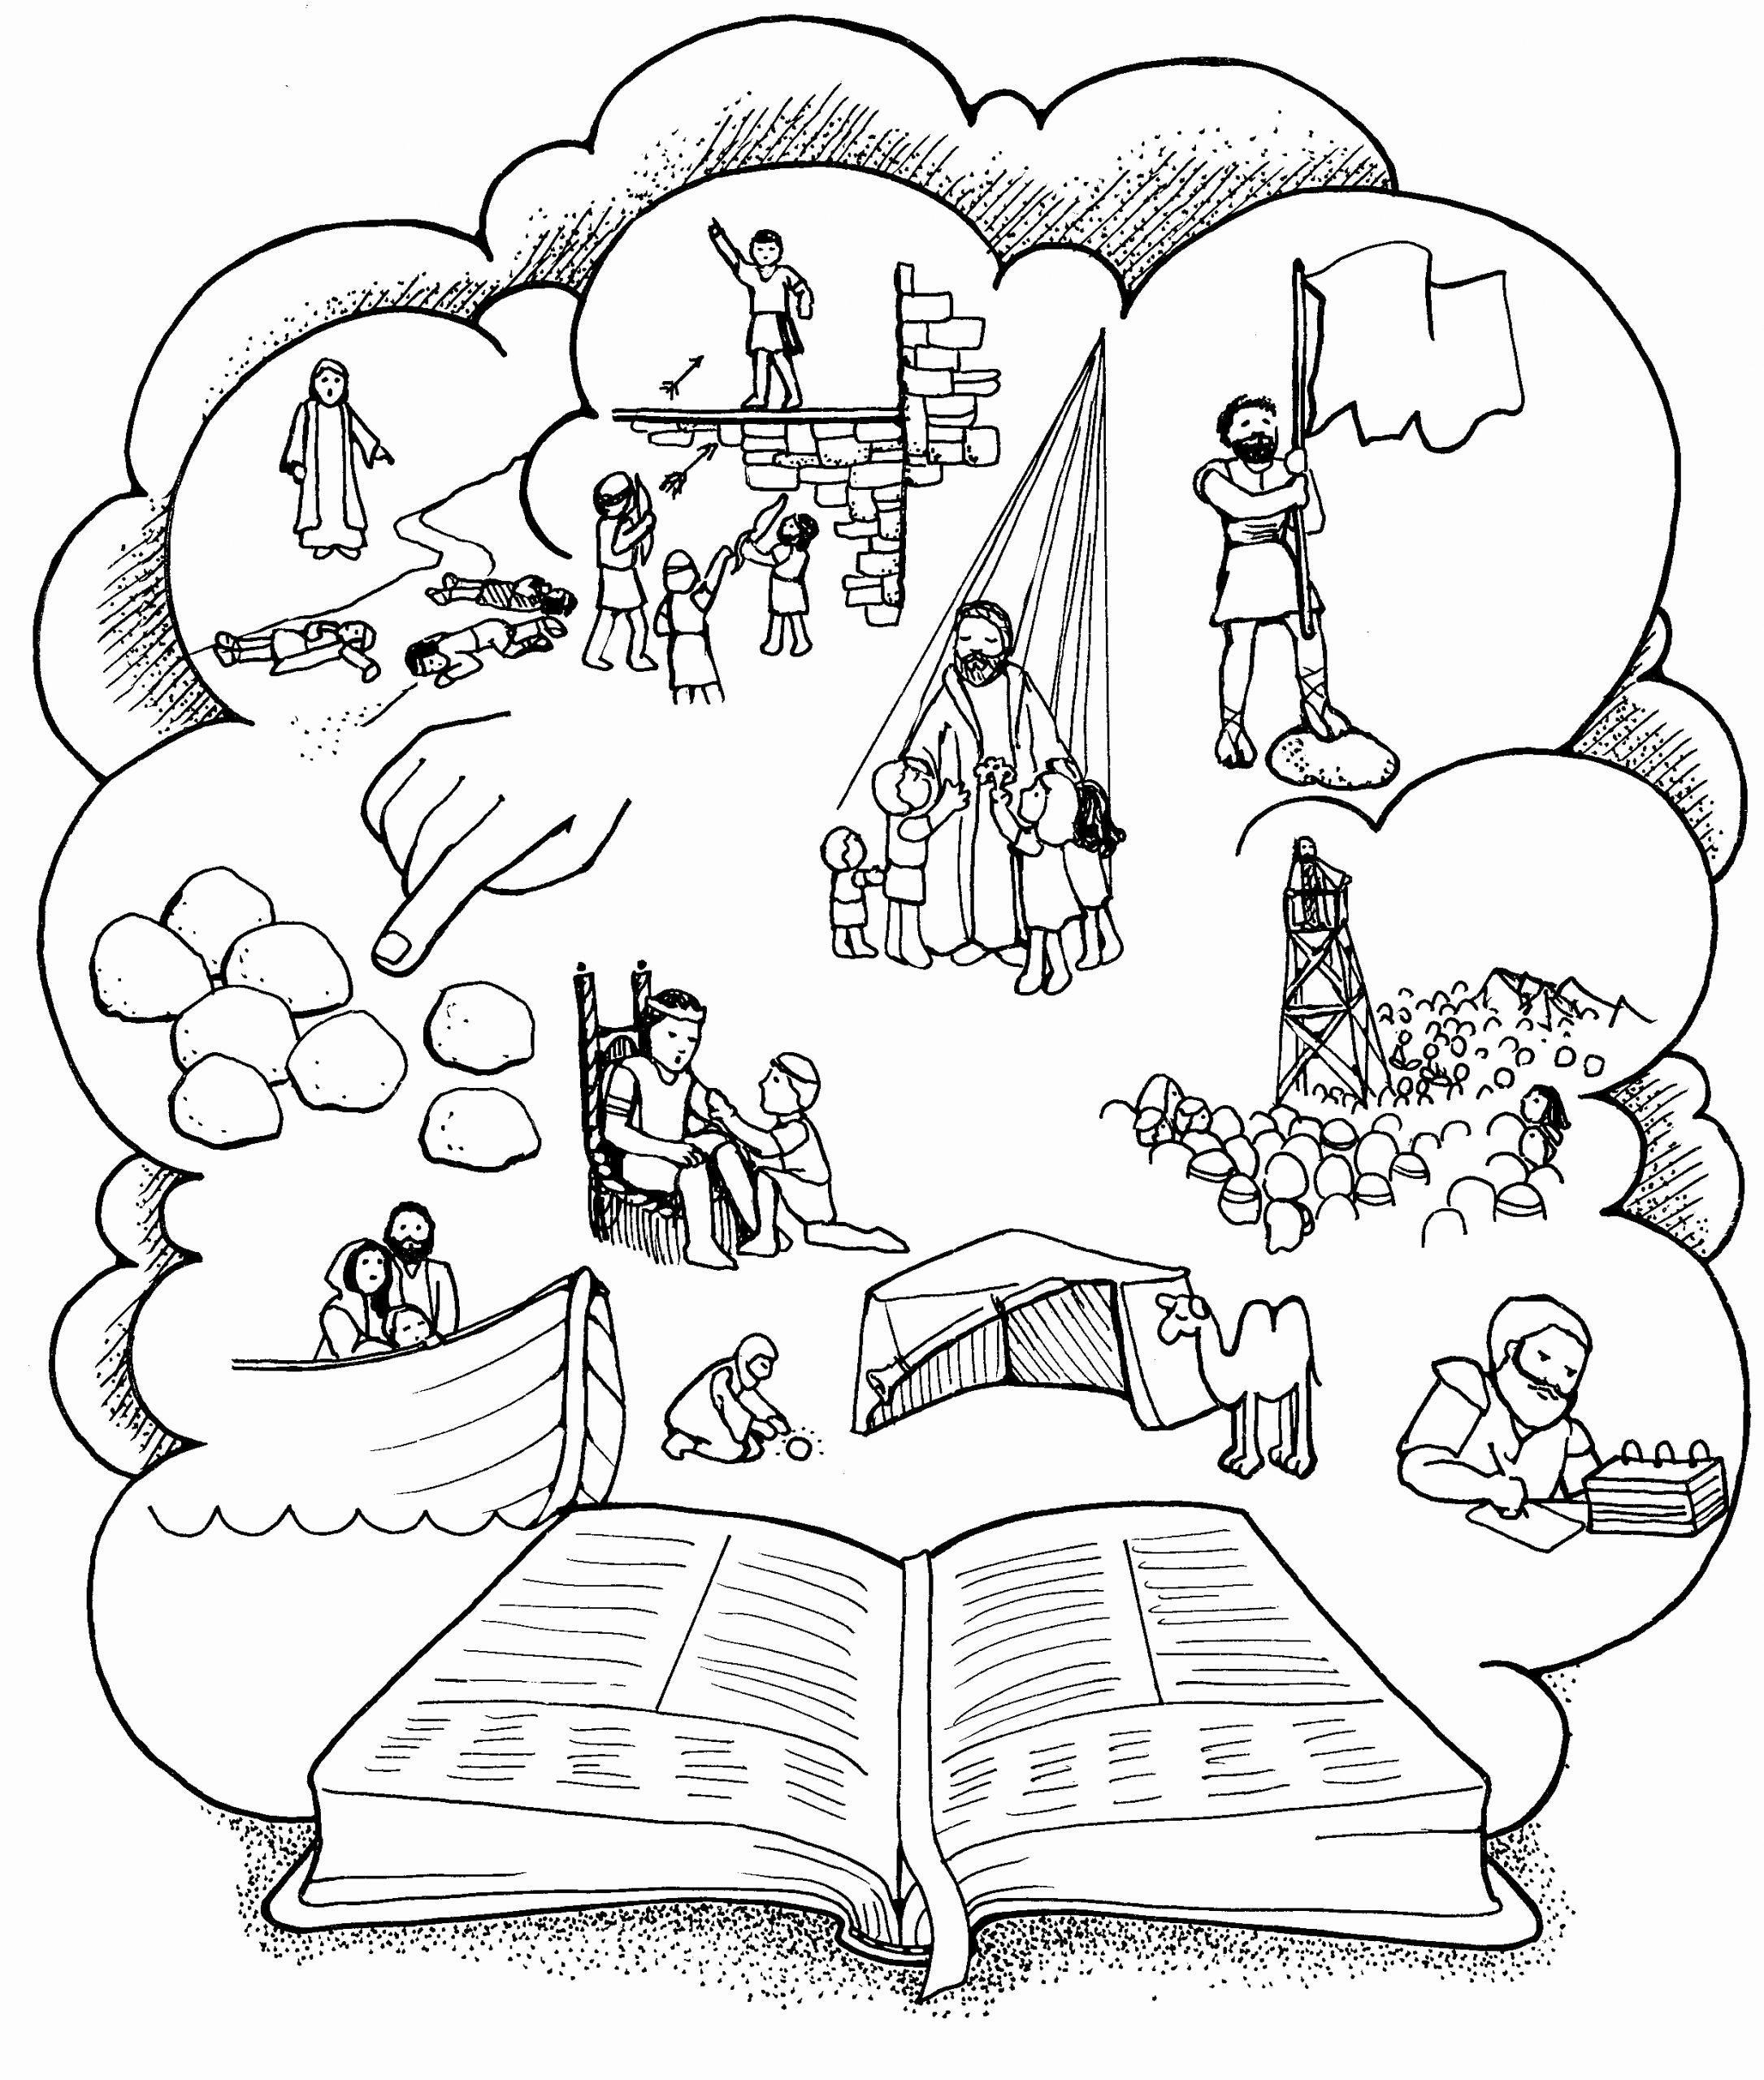 Coloring Letters Online Beautiful Okapi Coloring Pages In 2020 Lds Coloring Pages Kindergarten Coloring Pages Book Of Mormon Stories